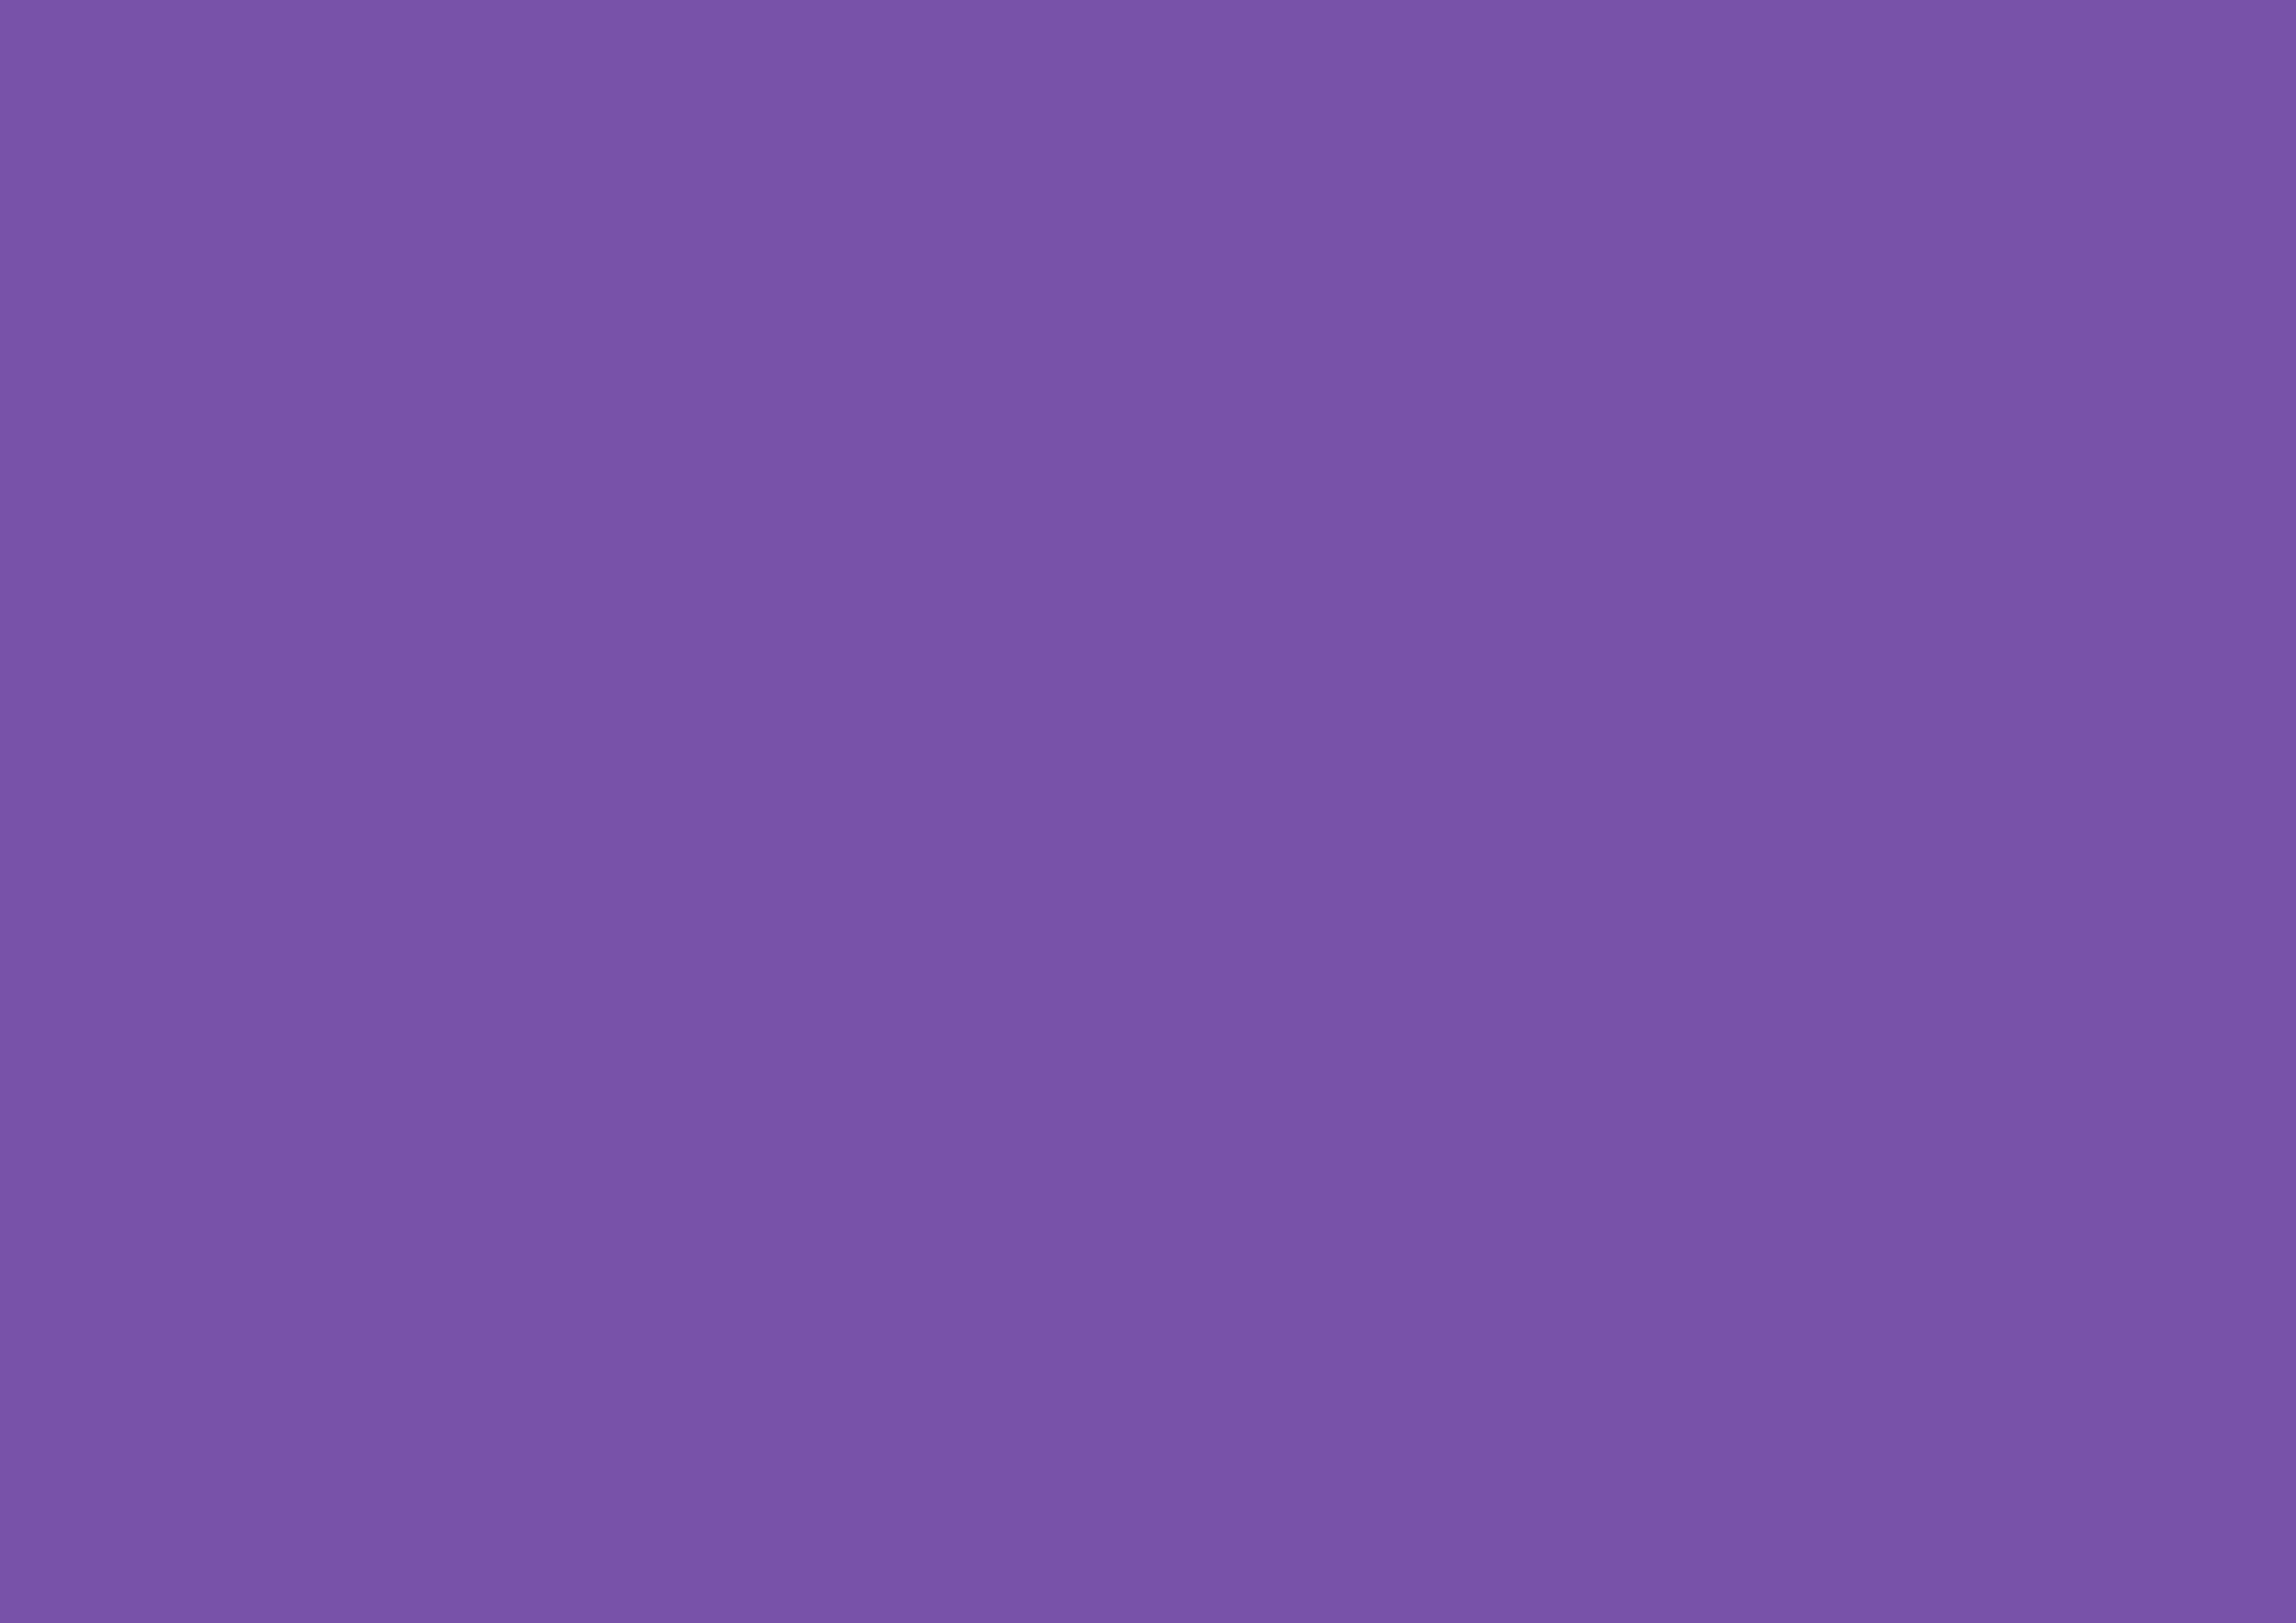 3508x2480 Royal Purple Solid Color Background